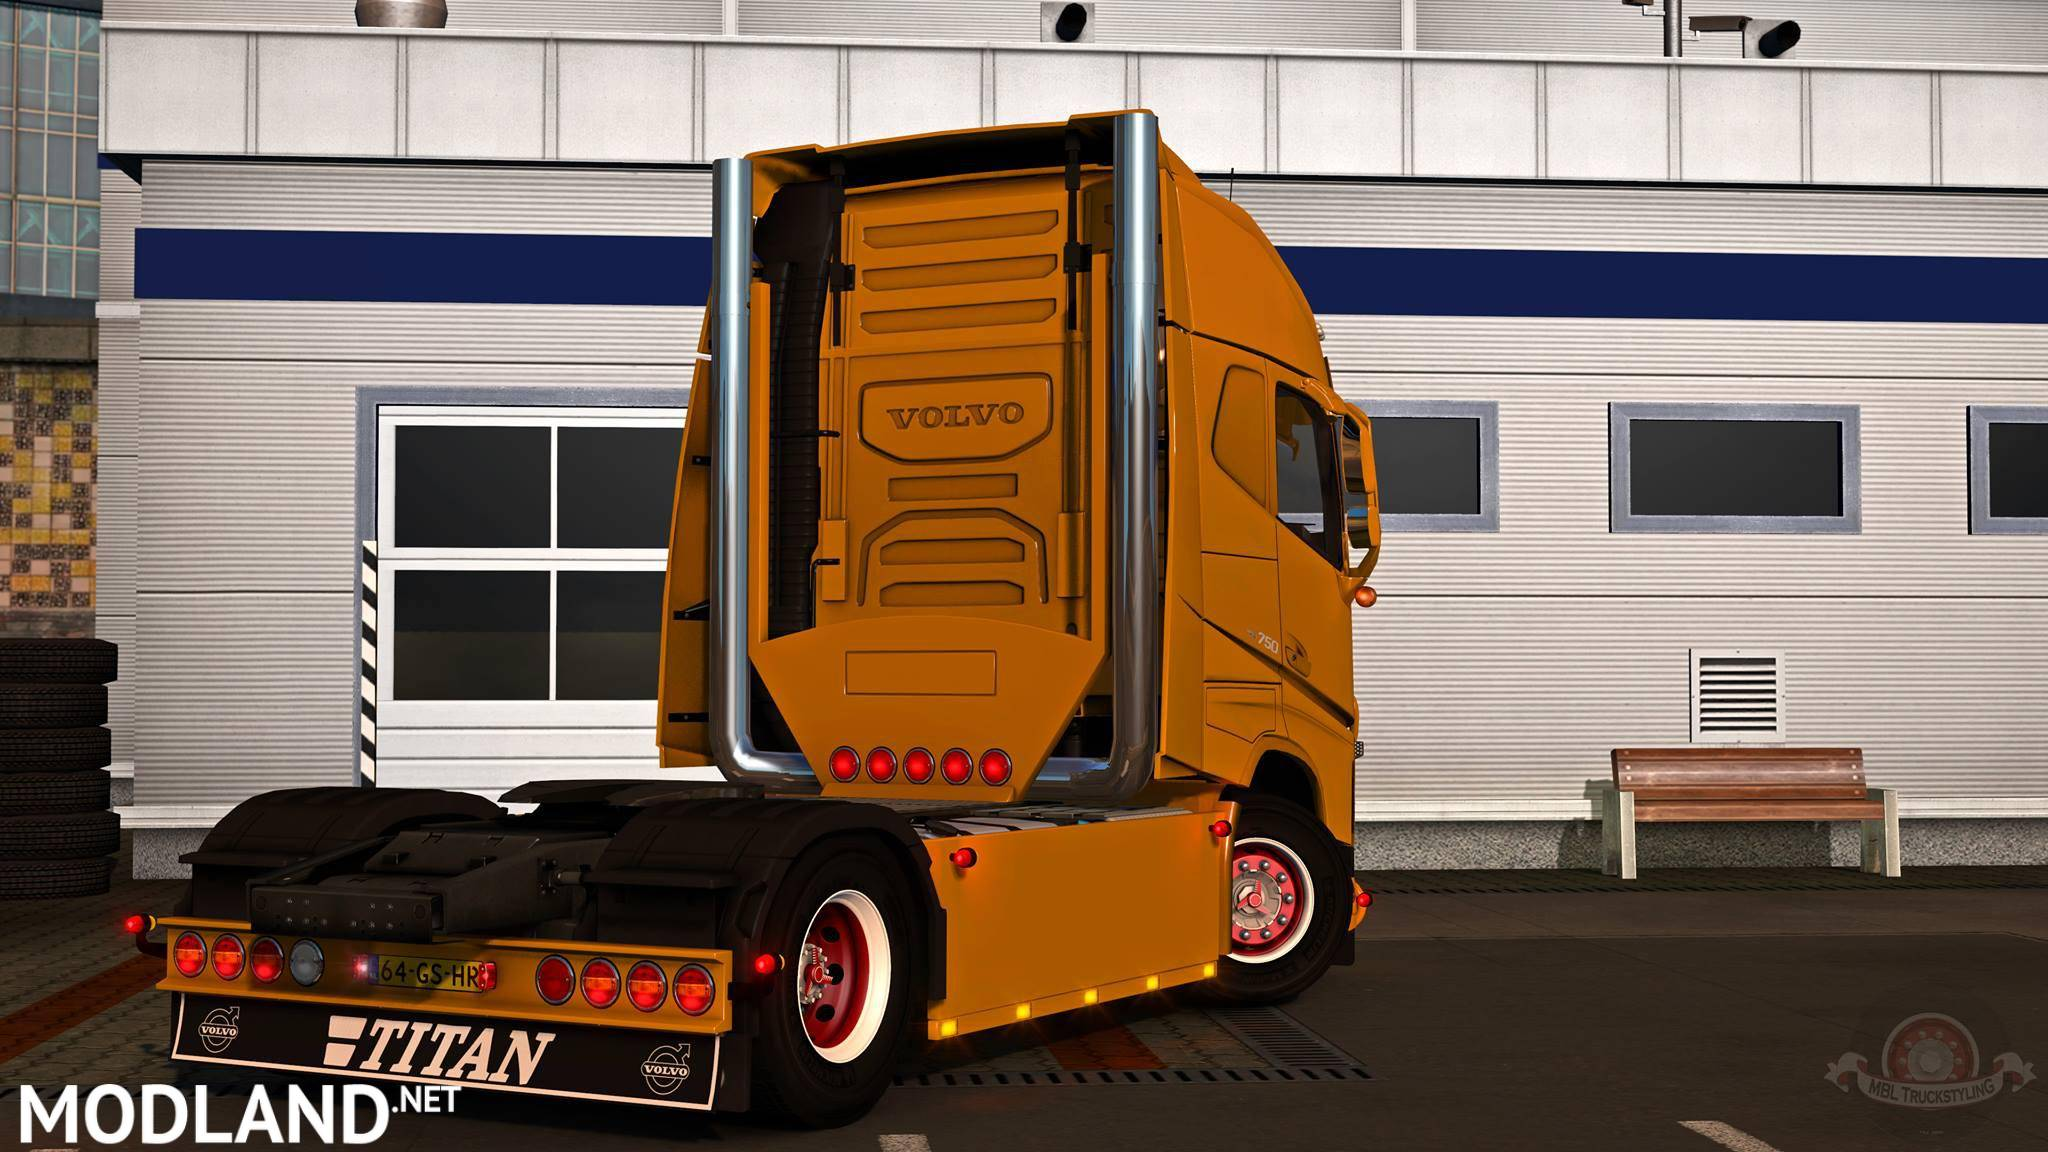 Mbl Volvo Addon Pack V 1 2 1 1 35 X Mod For Ets 2